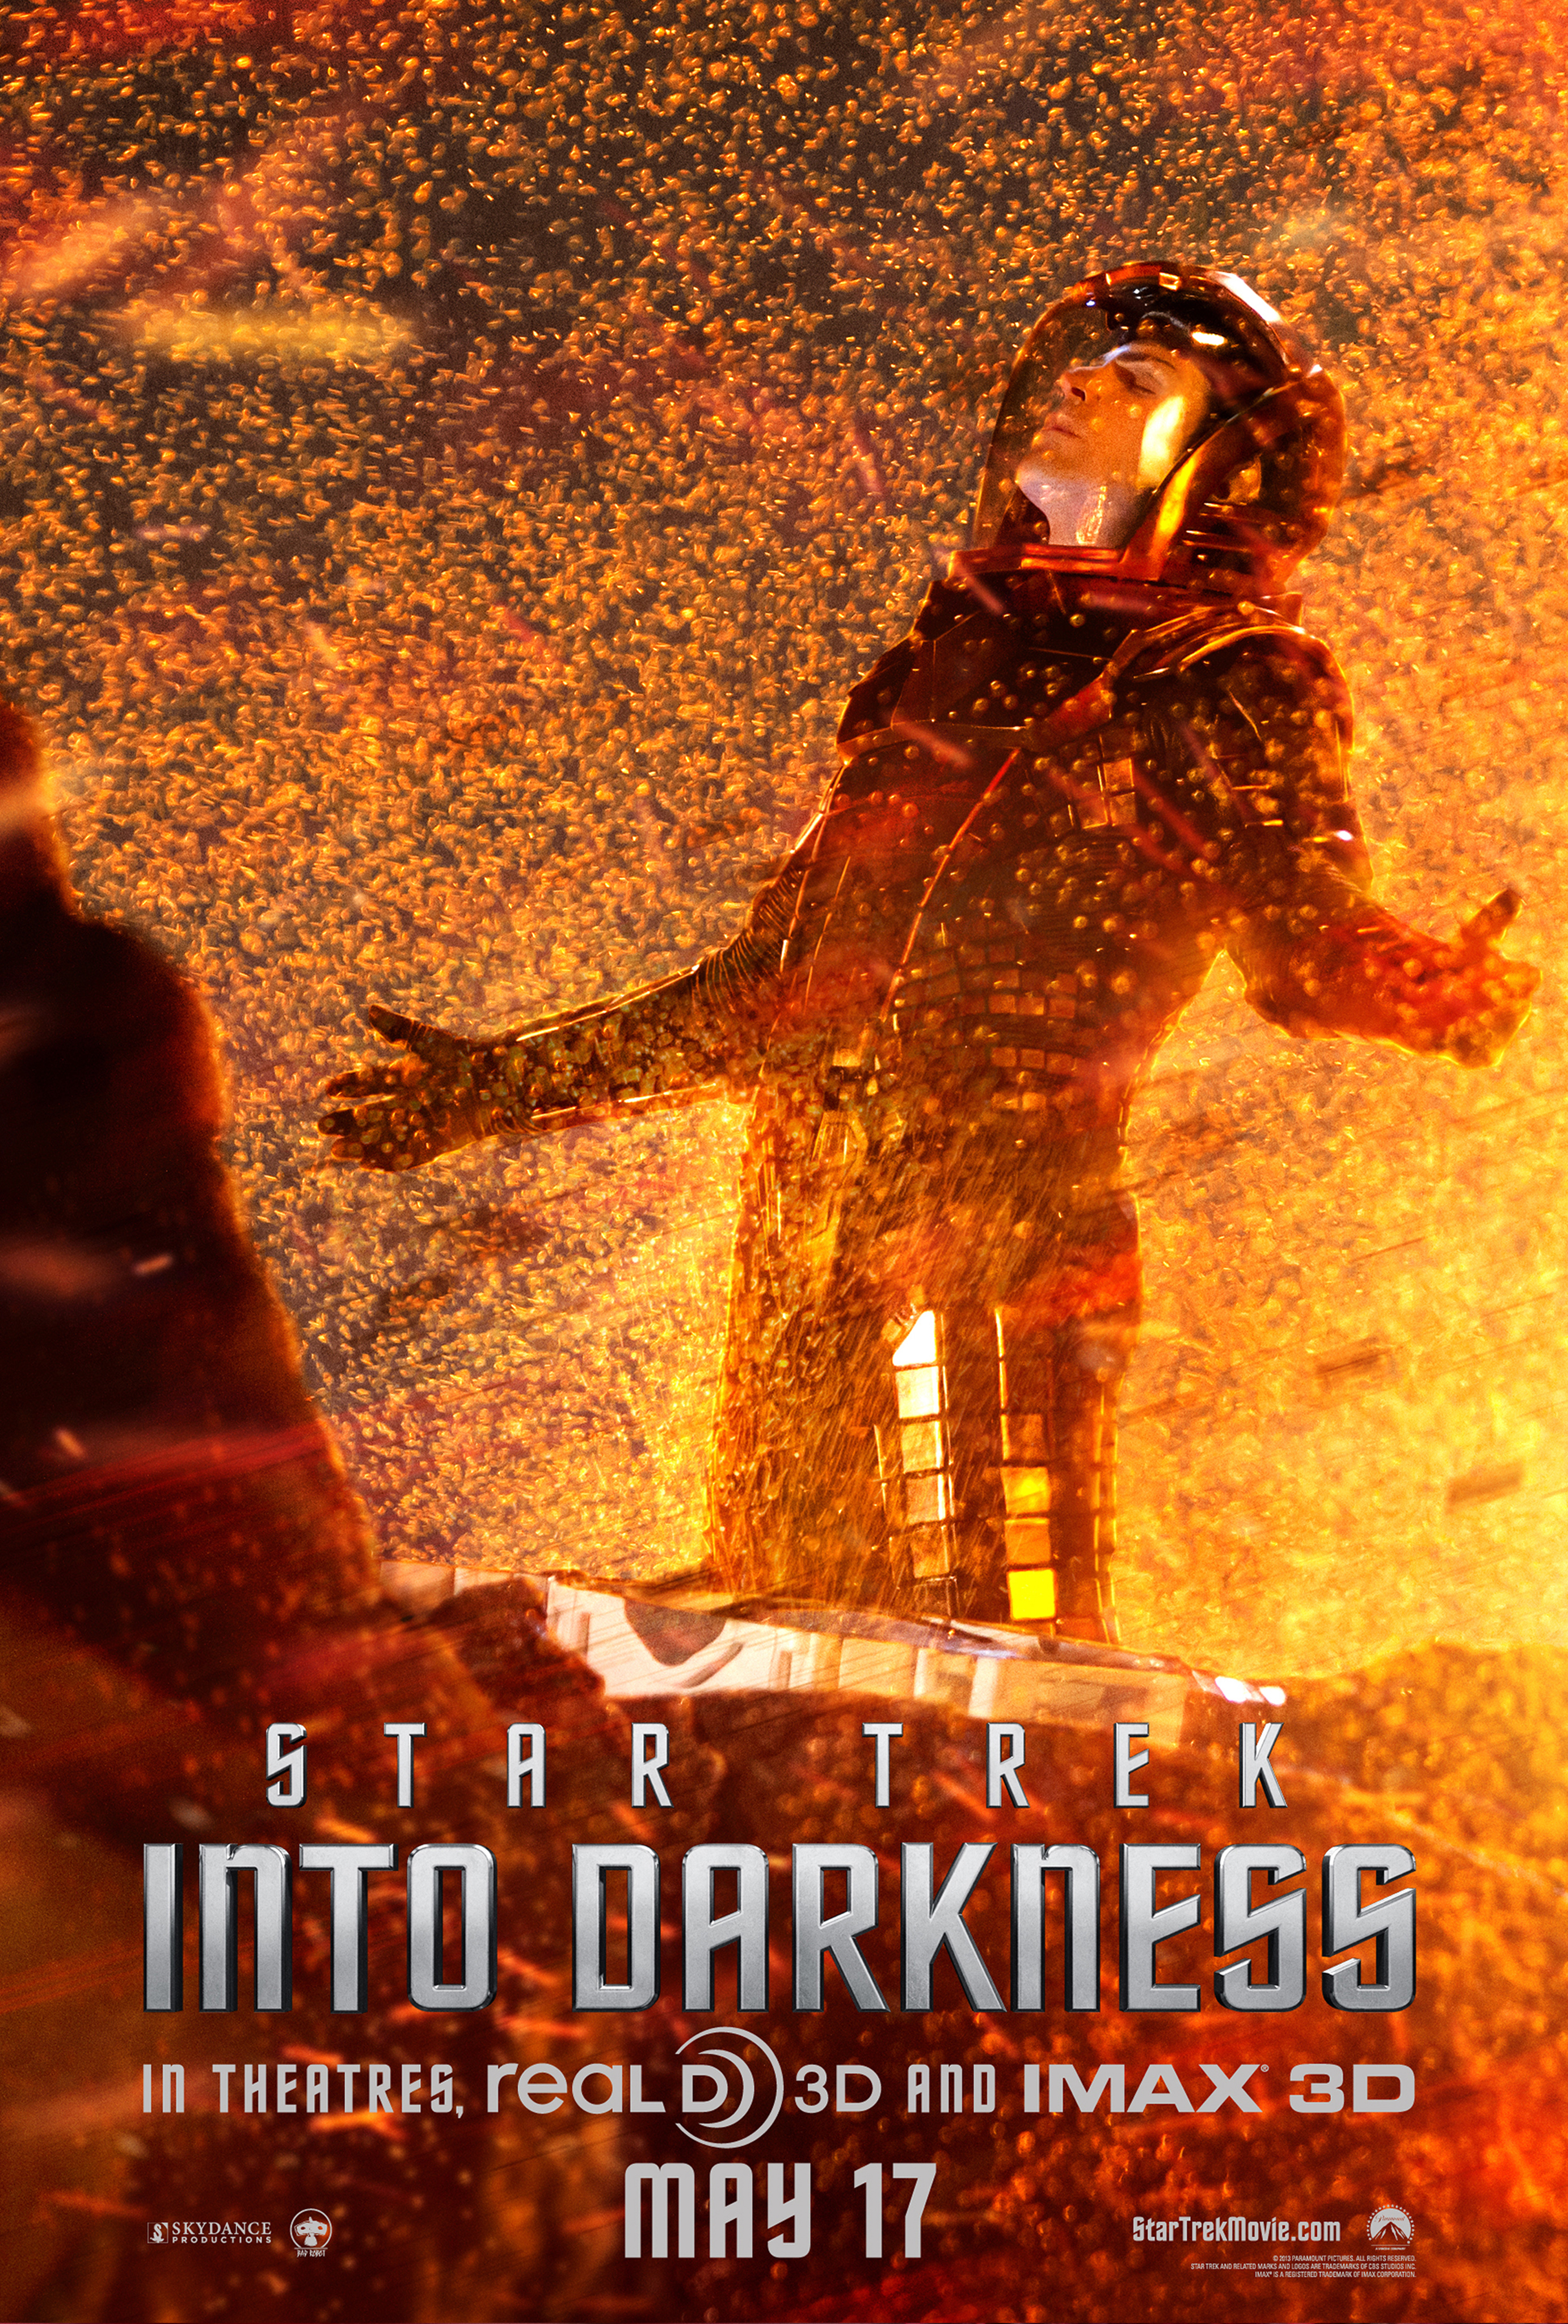 Star Trek Into Darkness - Movie Poster #5 (Original)